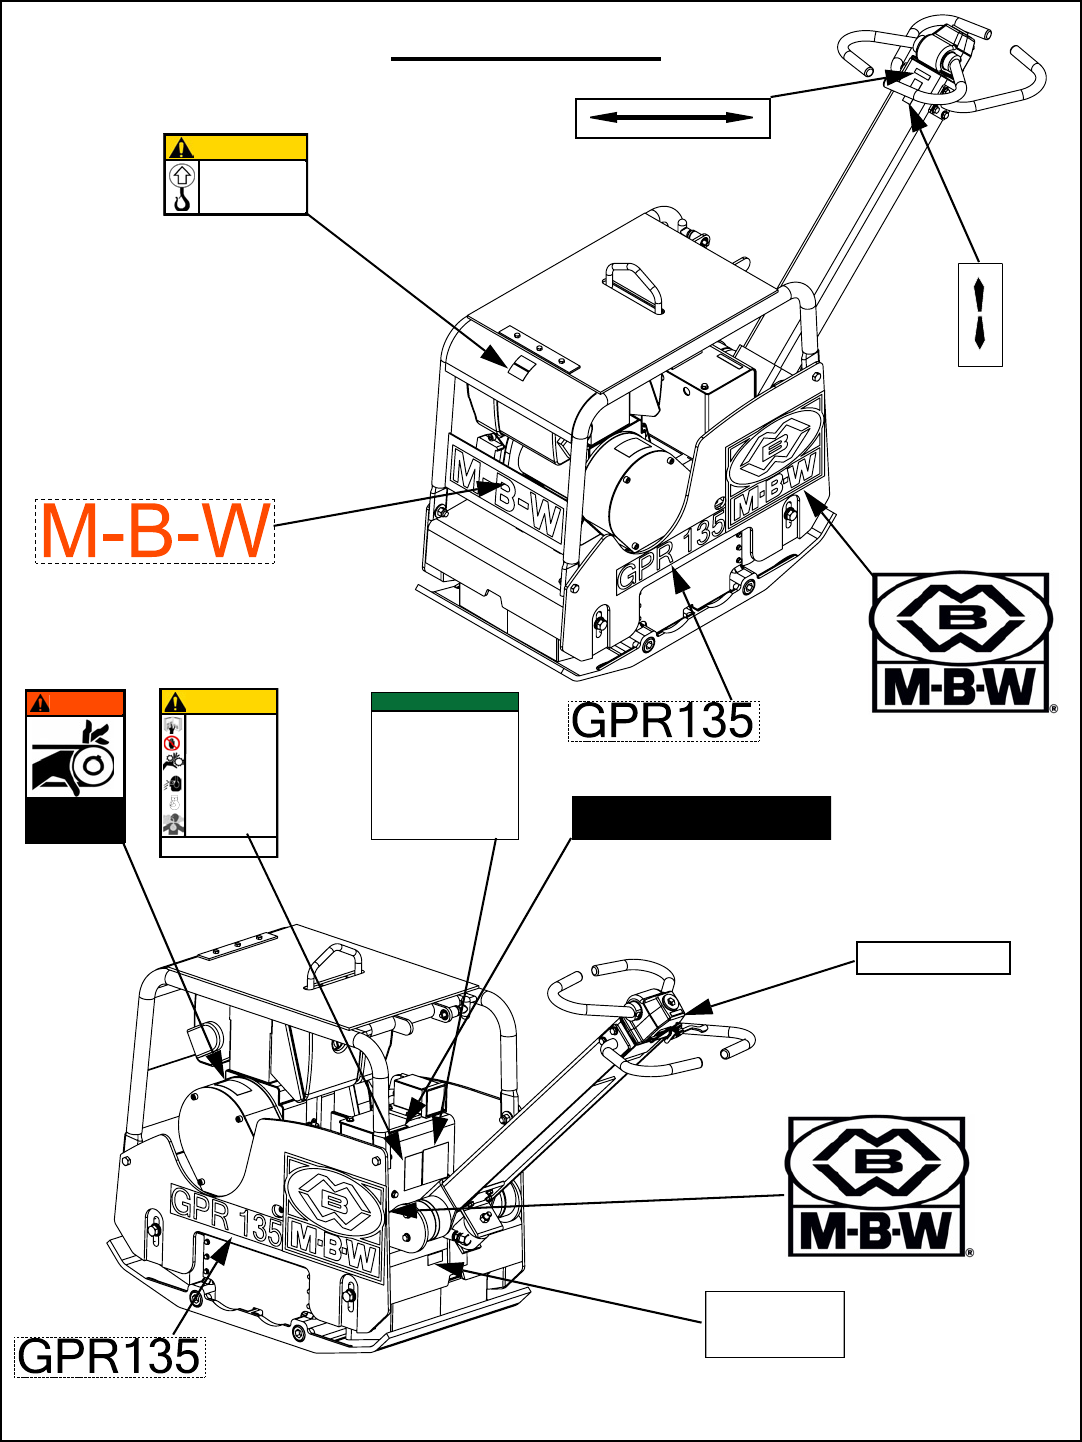 Mbw Network Hardware Gpr135 Users Manual Gpr99 135 38778 Wiring Block Diagram 2